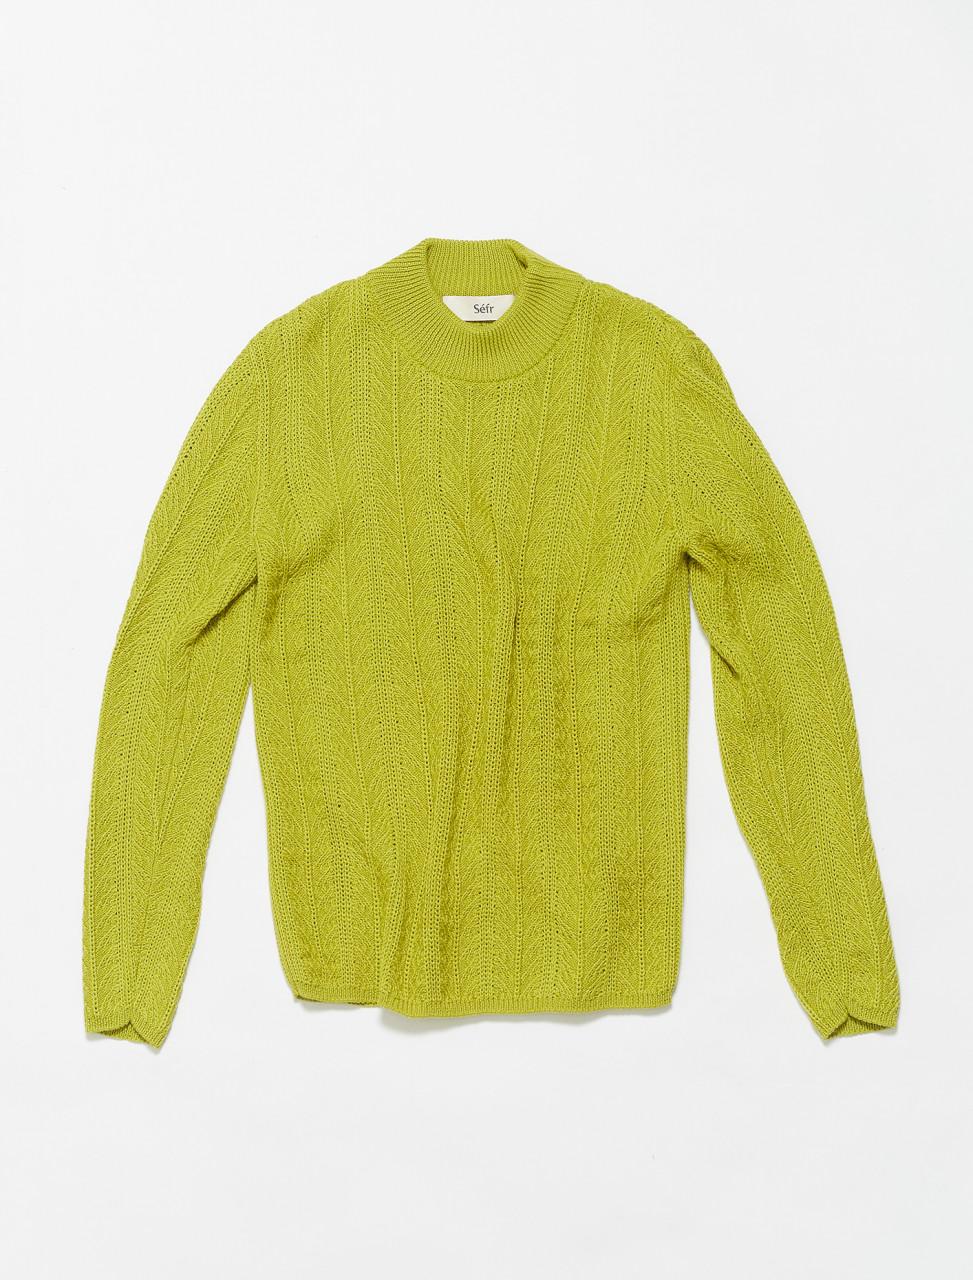 RS-PG SEFR RUFUS SWEATER PISTASCH GREEN